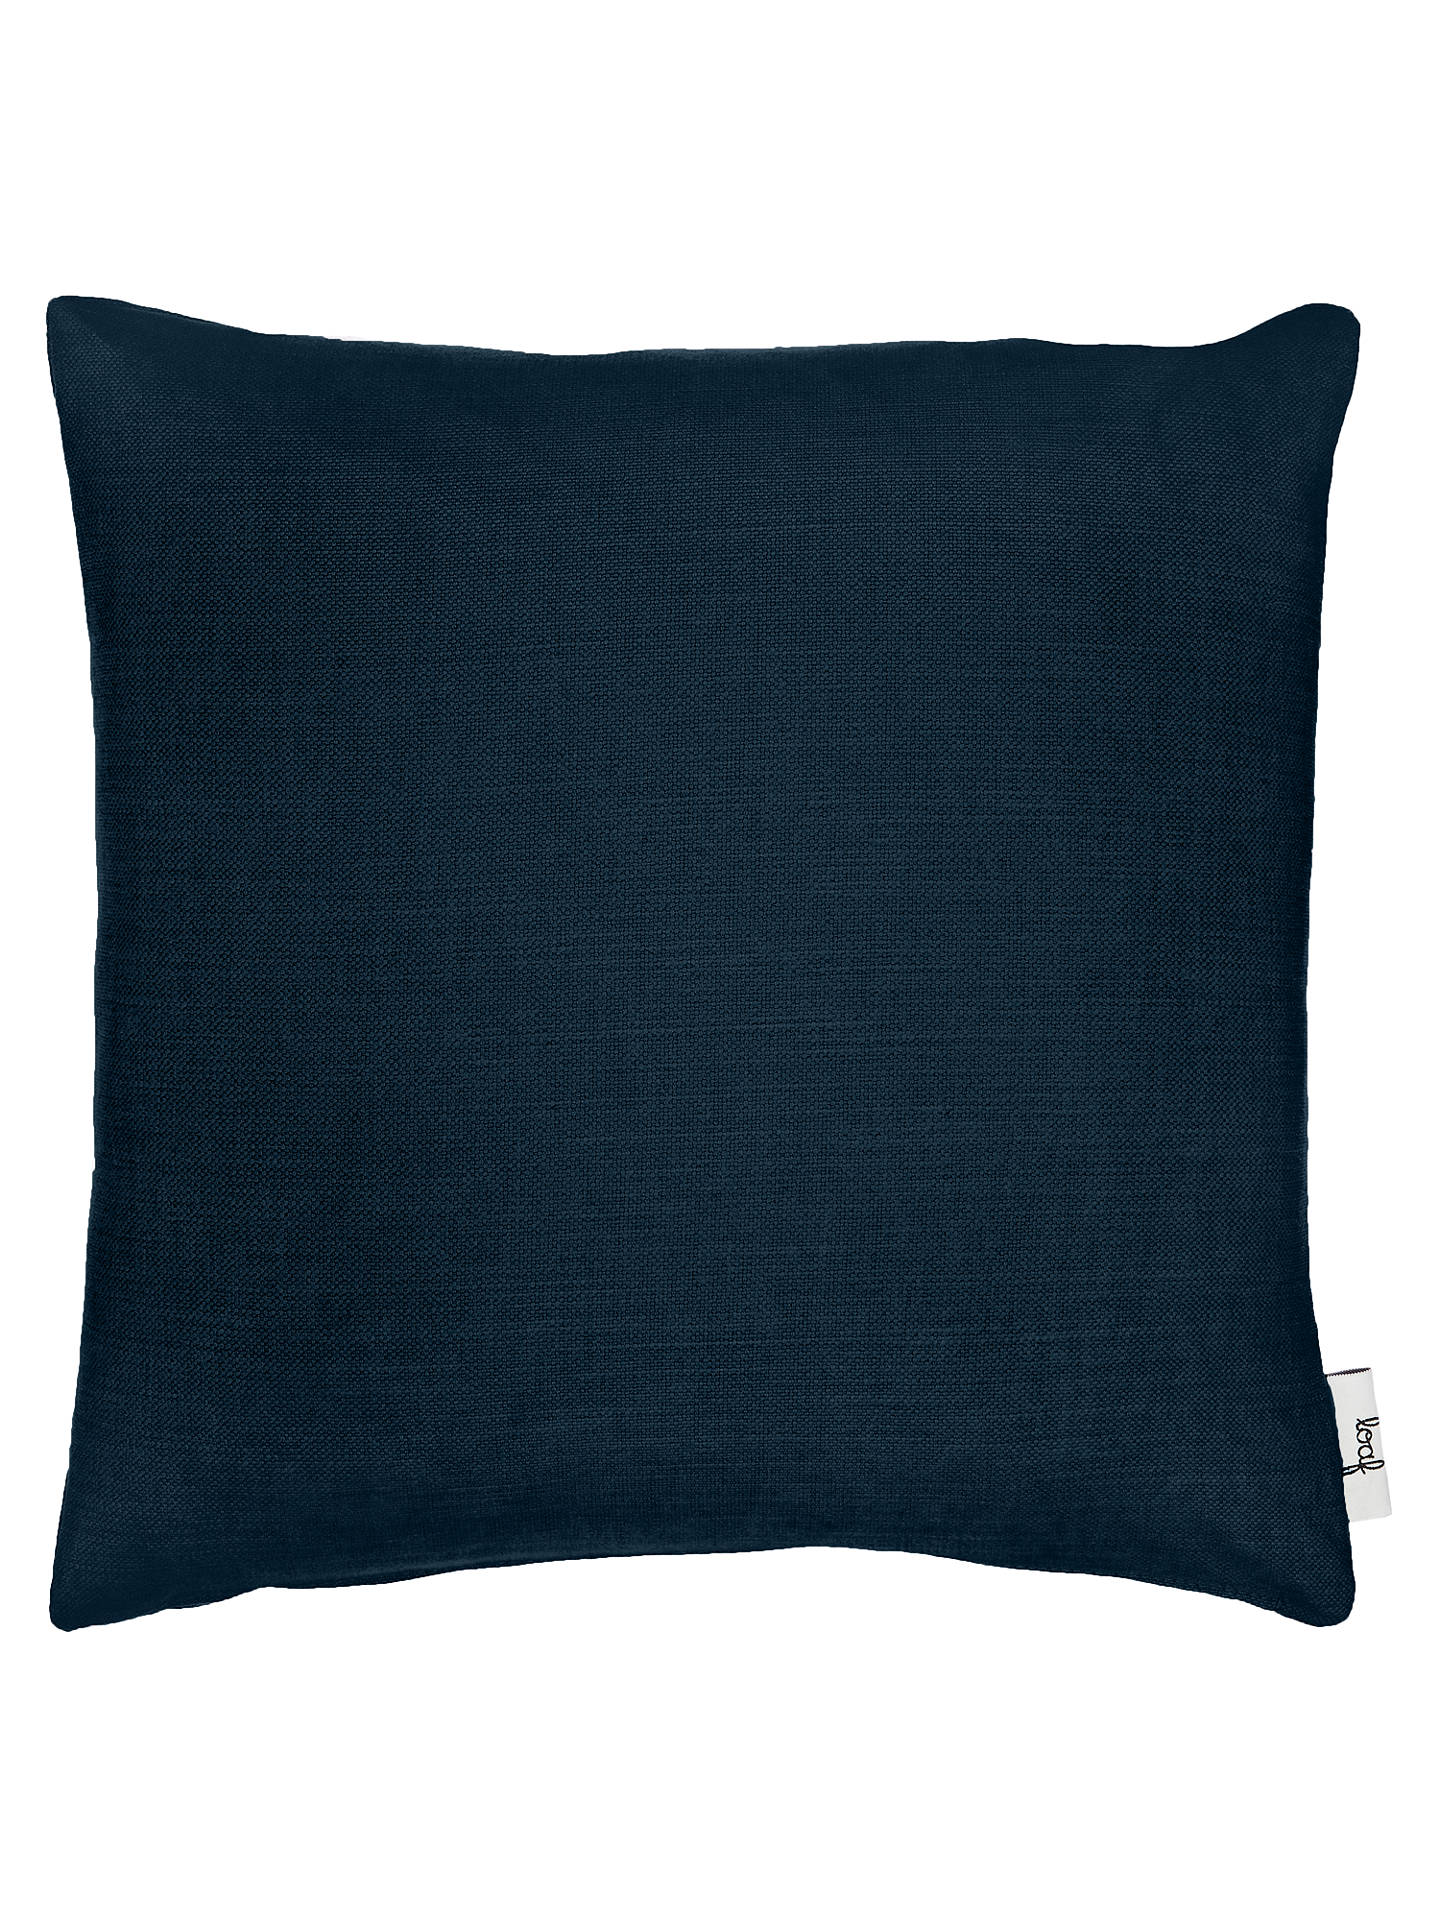 Buy Square Scatter Cushion by Loaf at John Lewis, Brushed Cotton Navy Online at johnlewis.com